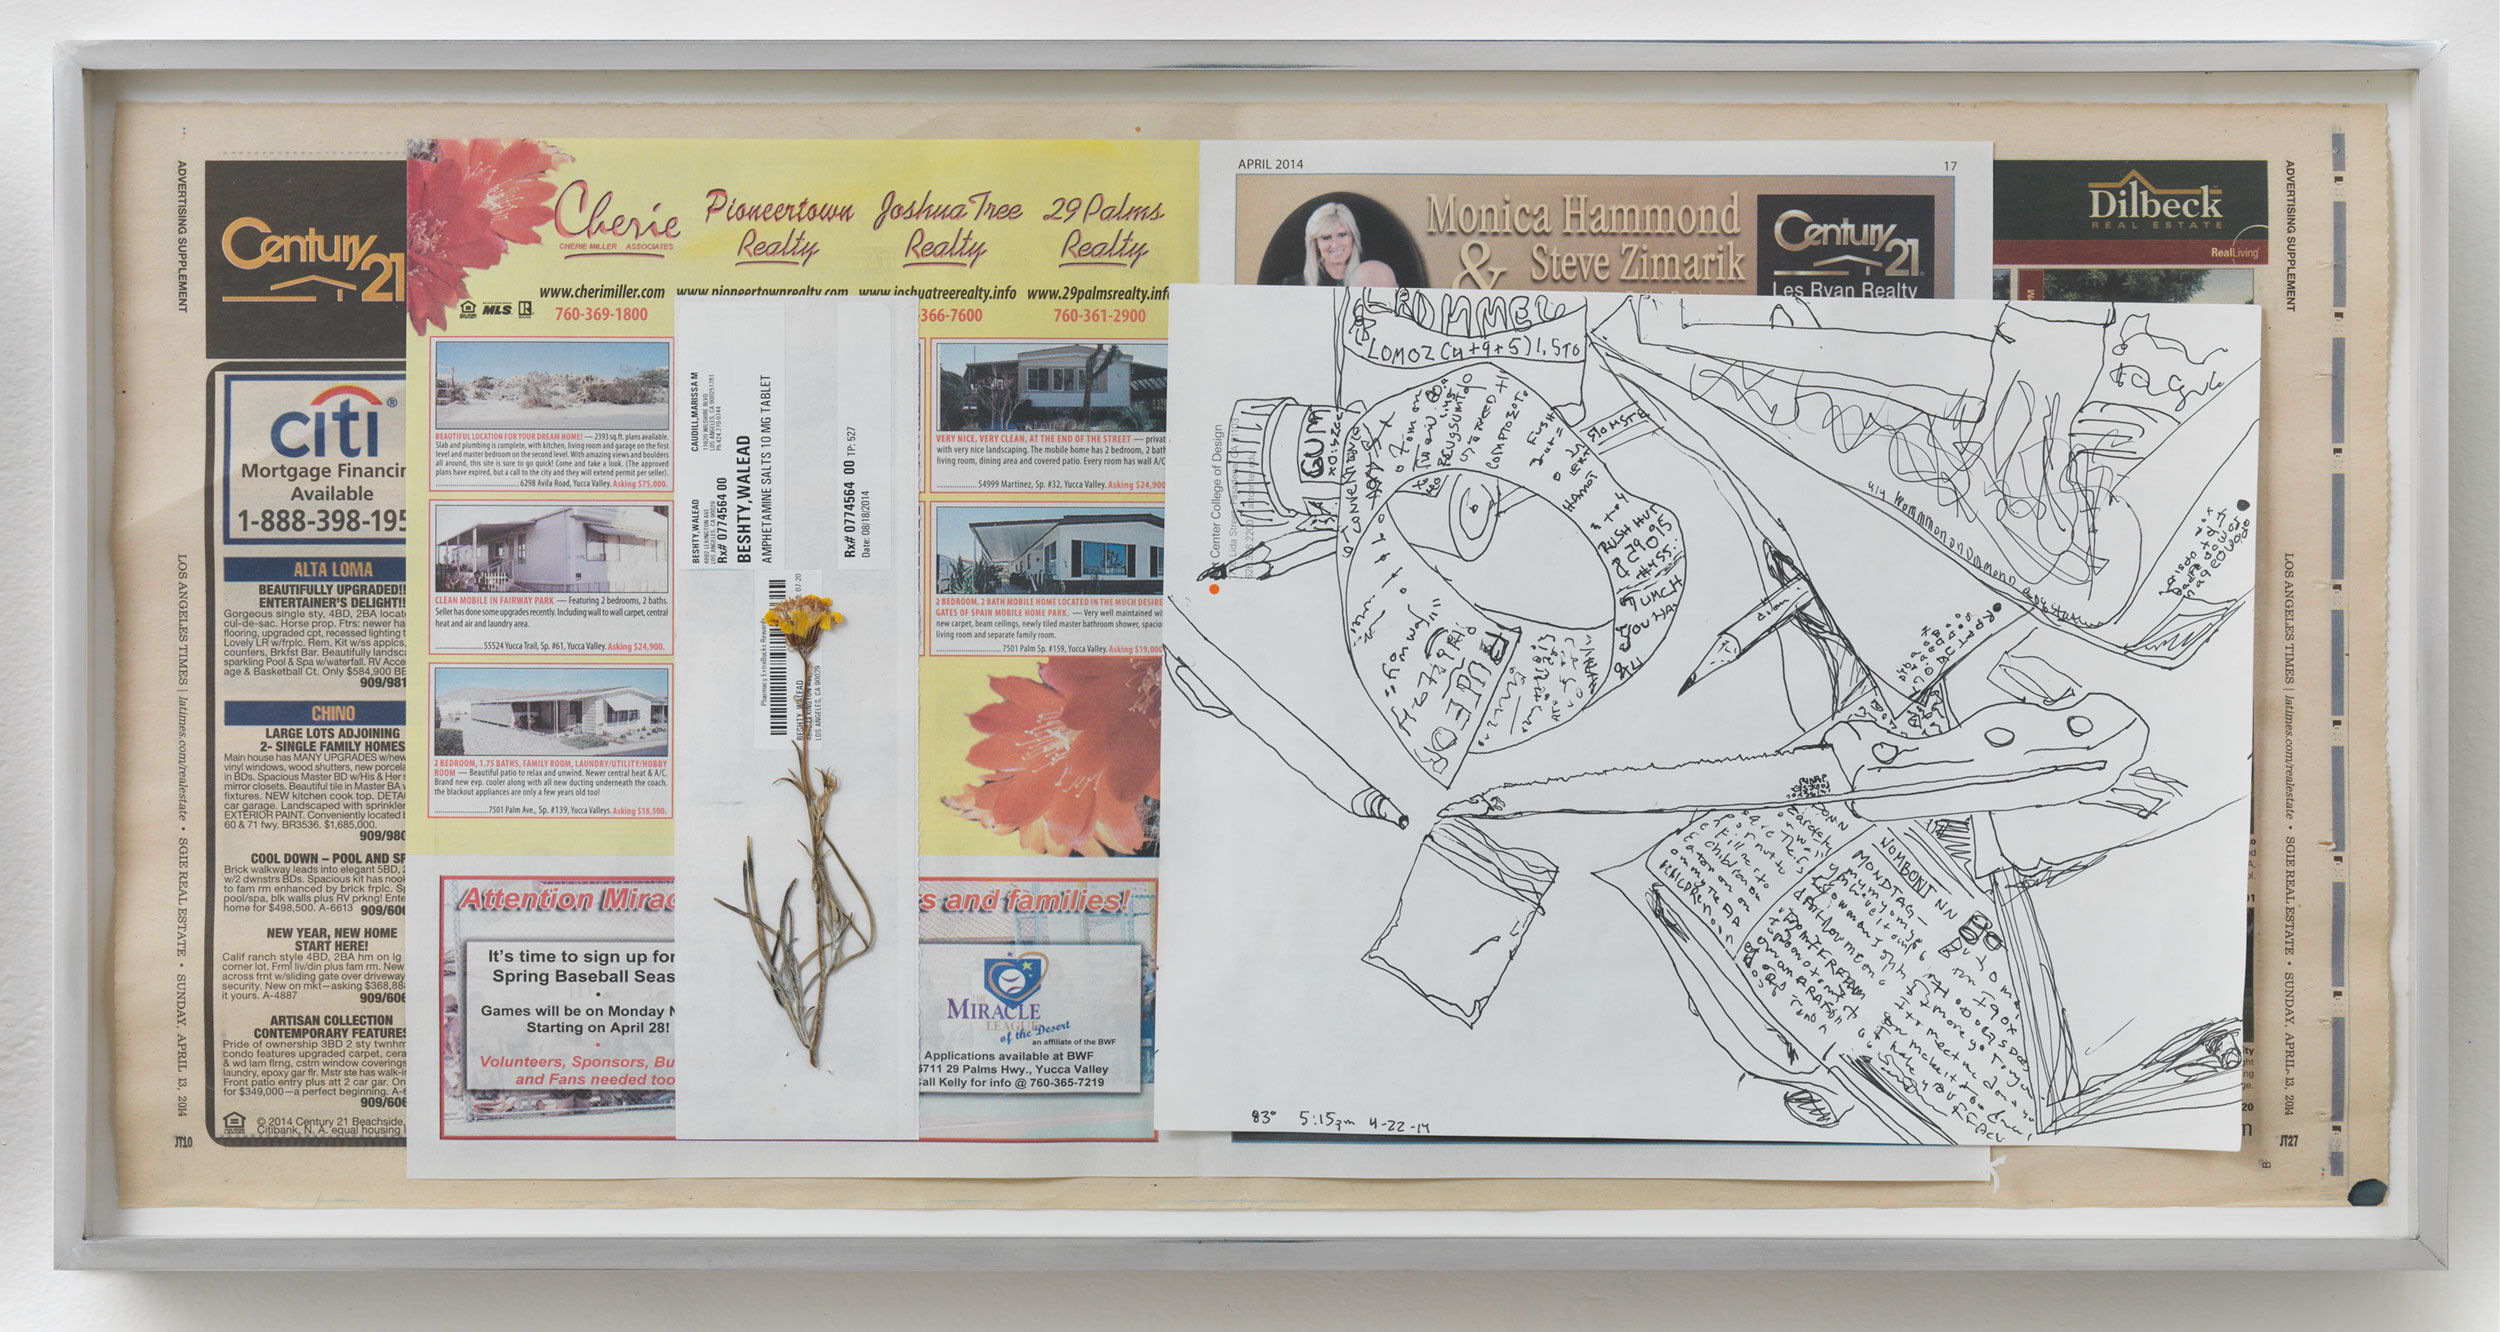 Century 21; Cherie Pioneertown Realty; Joshua Tree Realty; 29 Palms Realty; Dilbeck Real Estate, 83º, 5:15pm, 22-4-14    2014   Ink on paper, receipt, dried flower, newspaper  11 x 22 1/2 inches   Gastarbeiten, 2014